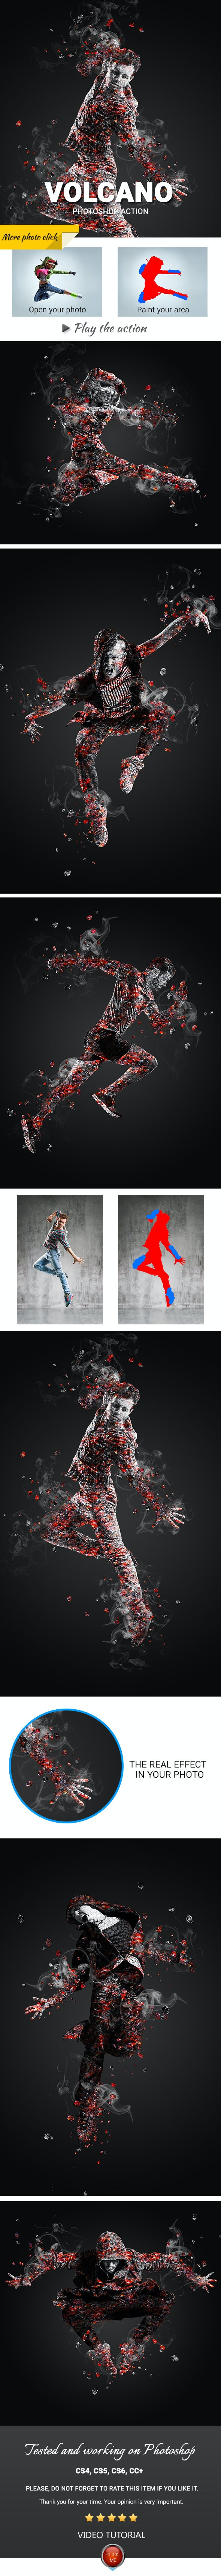 Volcano Photoshop Action - Photo Effects Actions